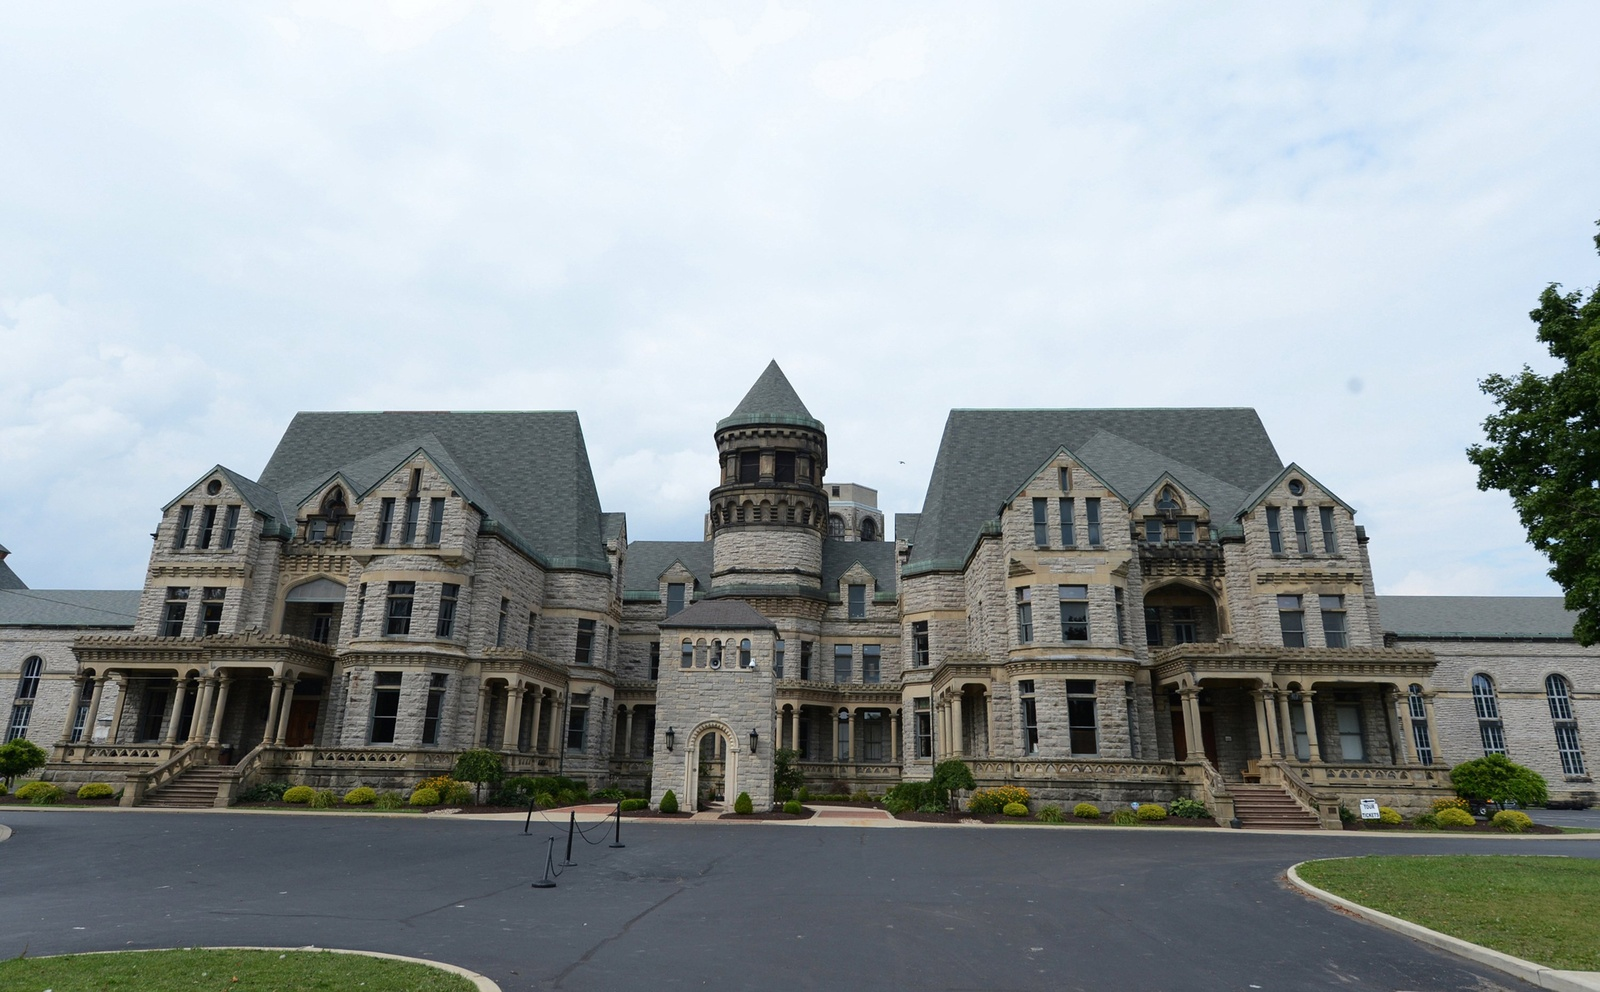 The Ohio State Reformatory in Mansfield, Ohio Credit: Courtesy of MCT